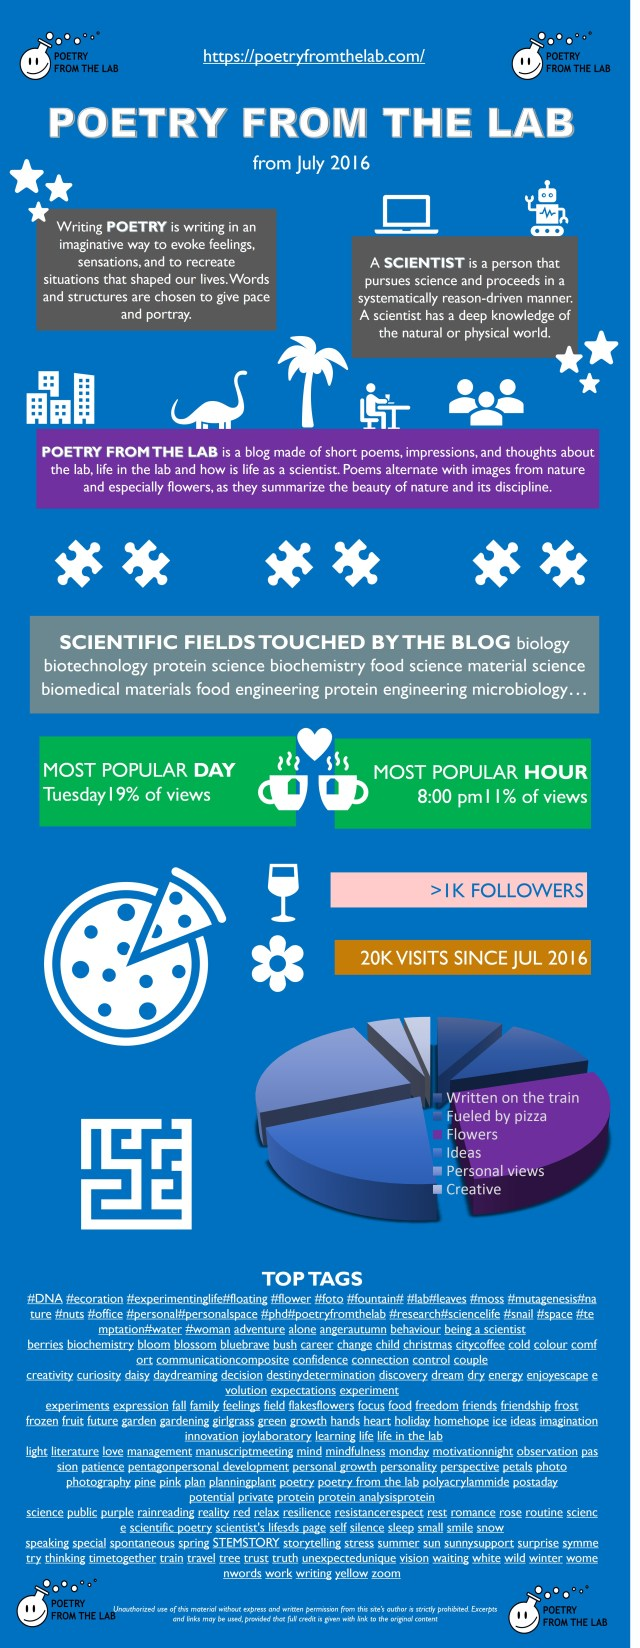 infographic as introduction to the blog poetry from the lab